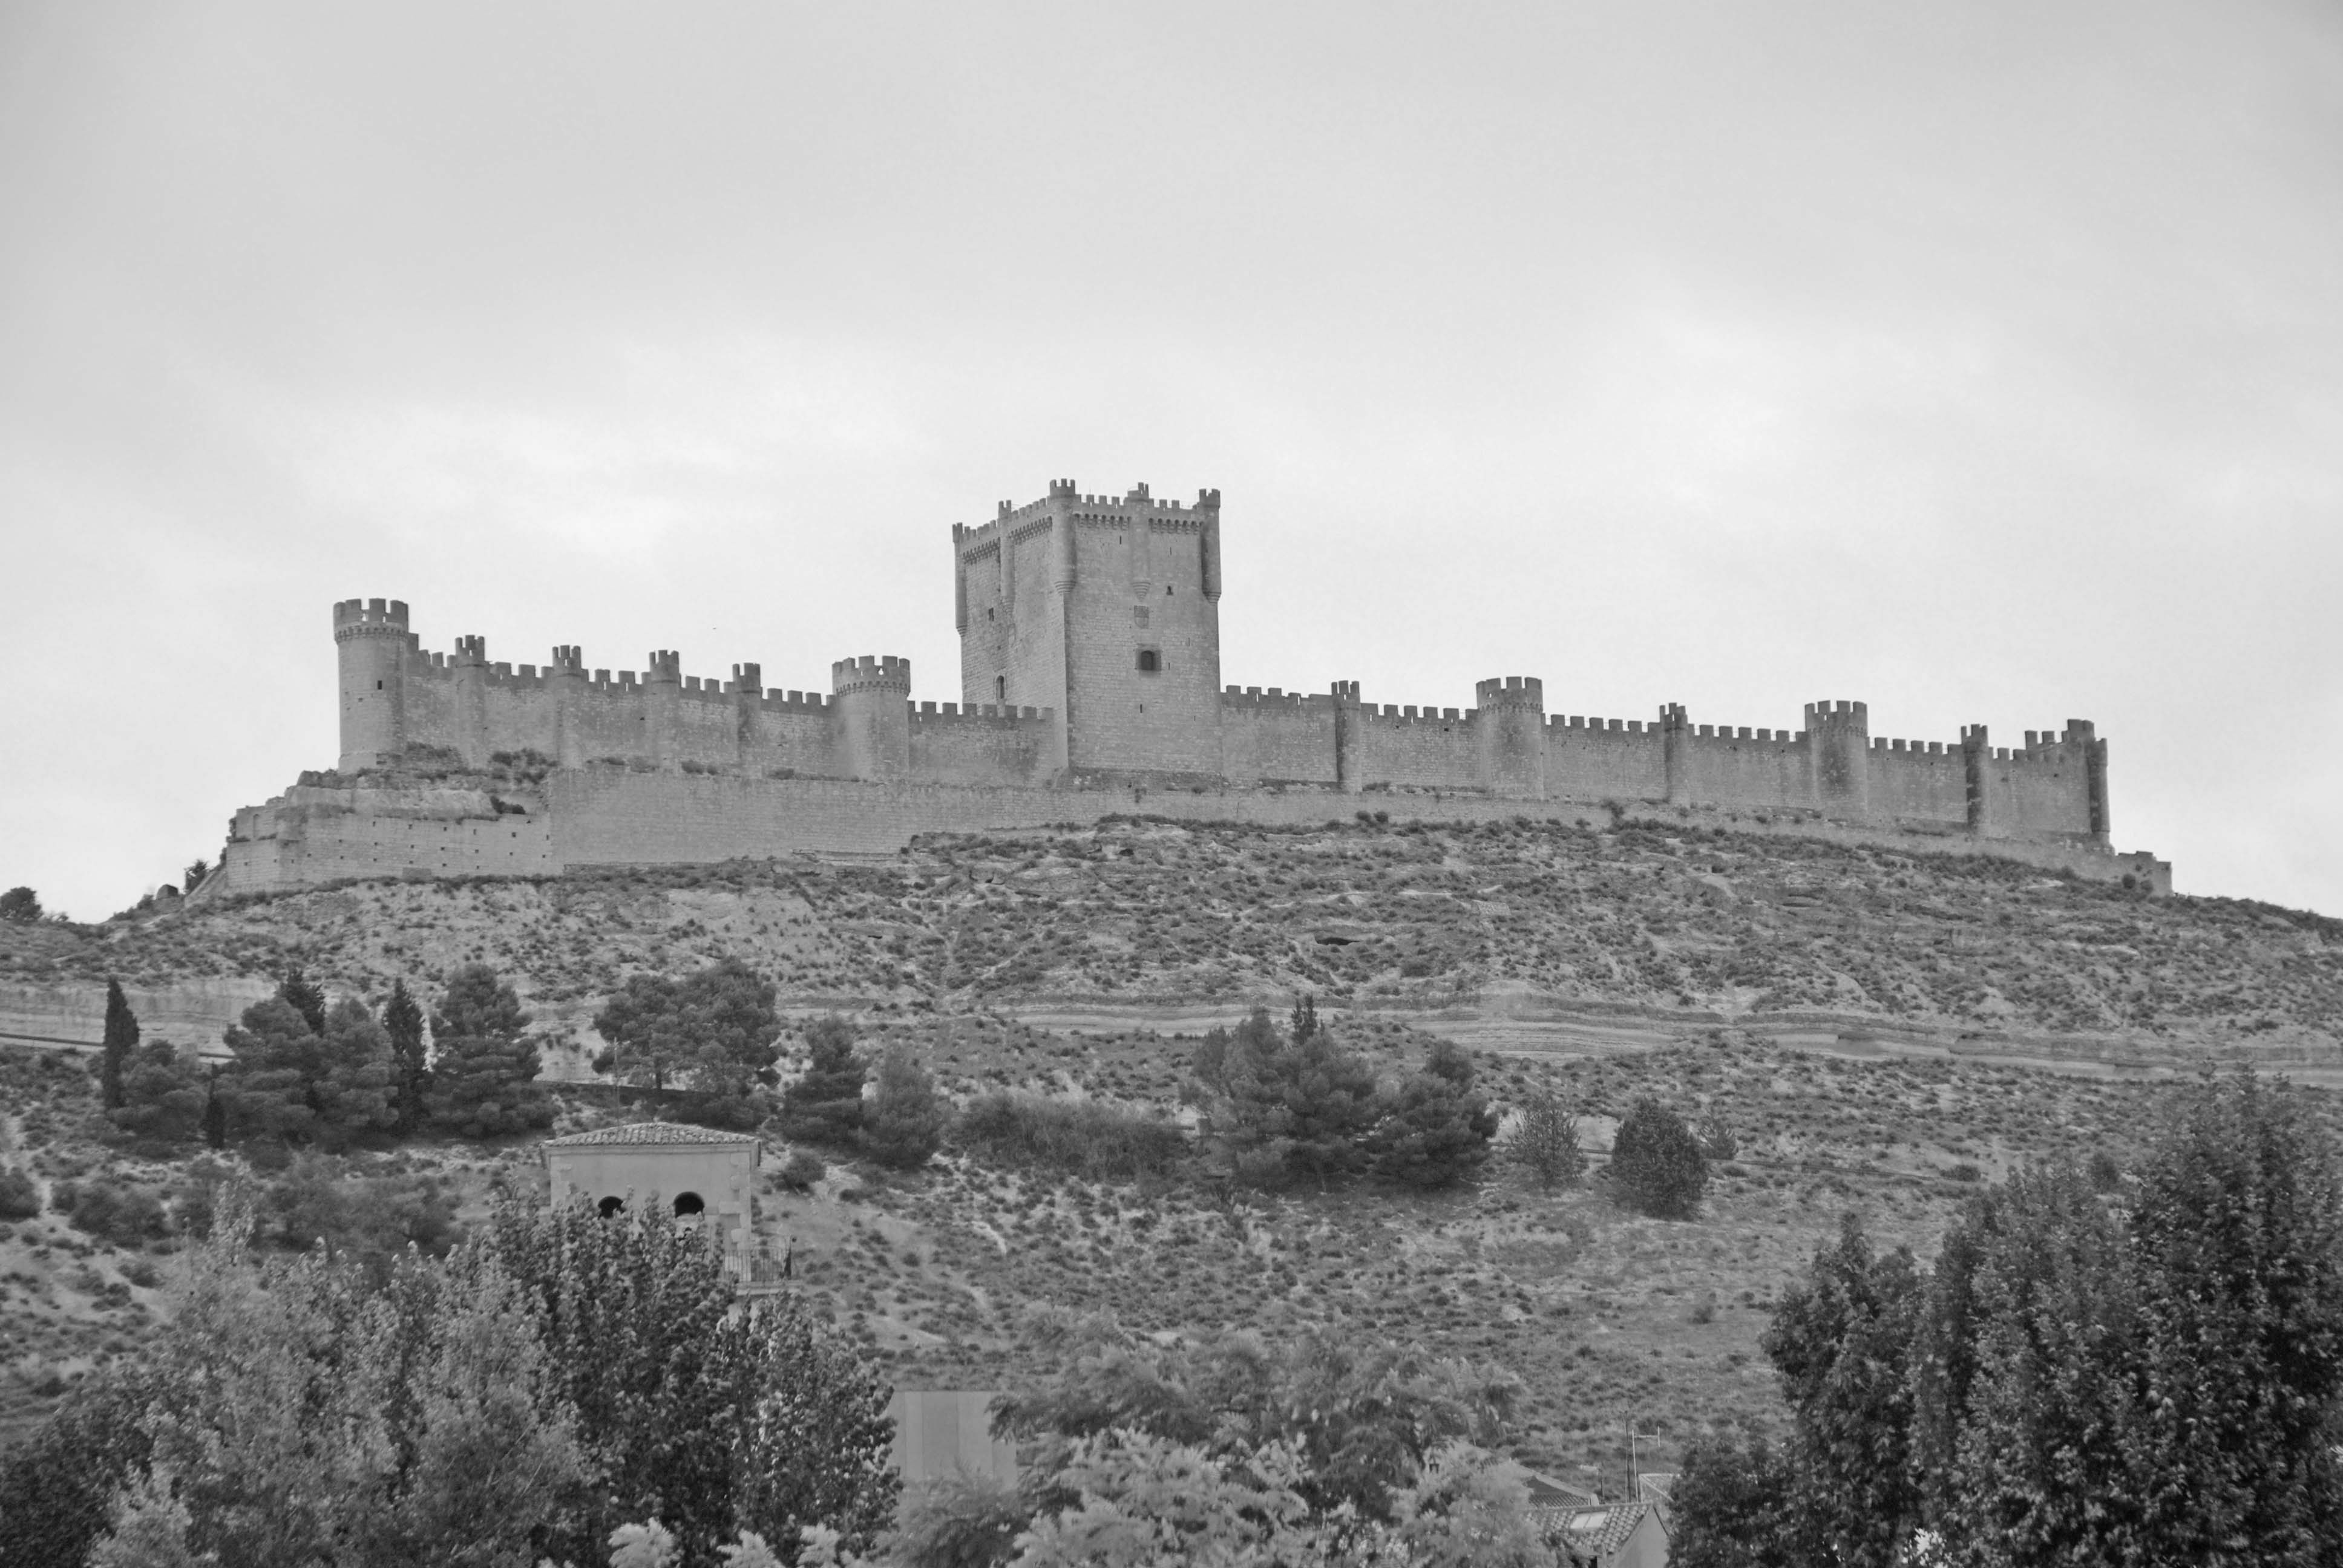 Penafiel castle, as viewed from our hotel terrace